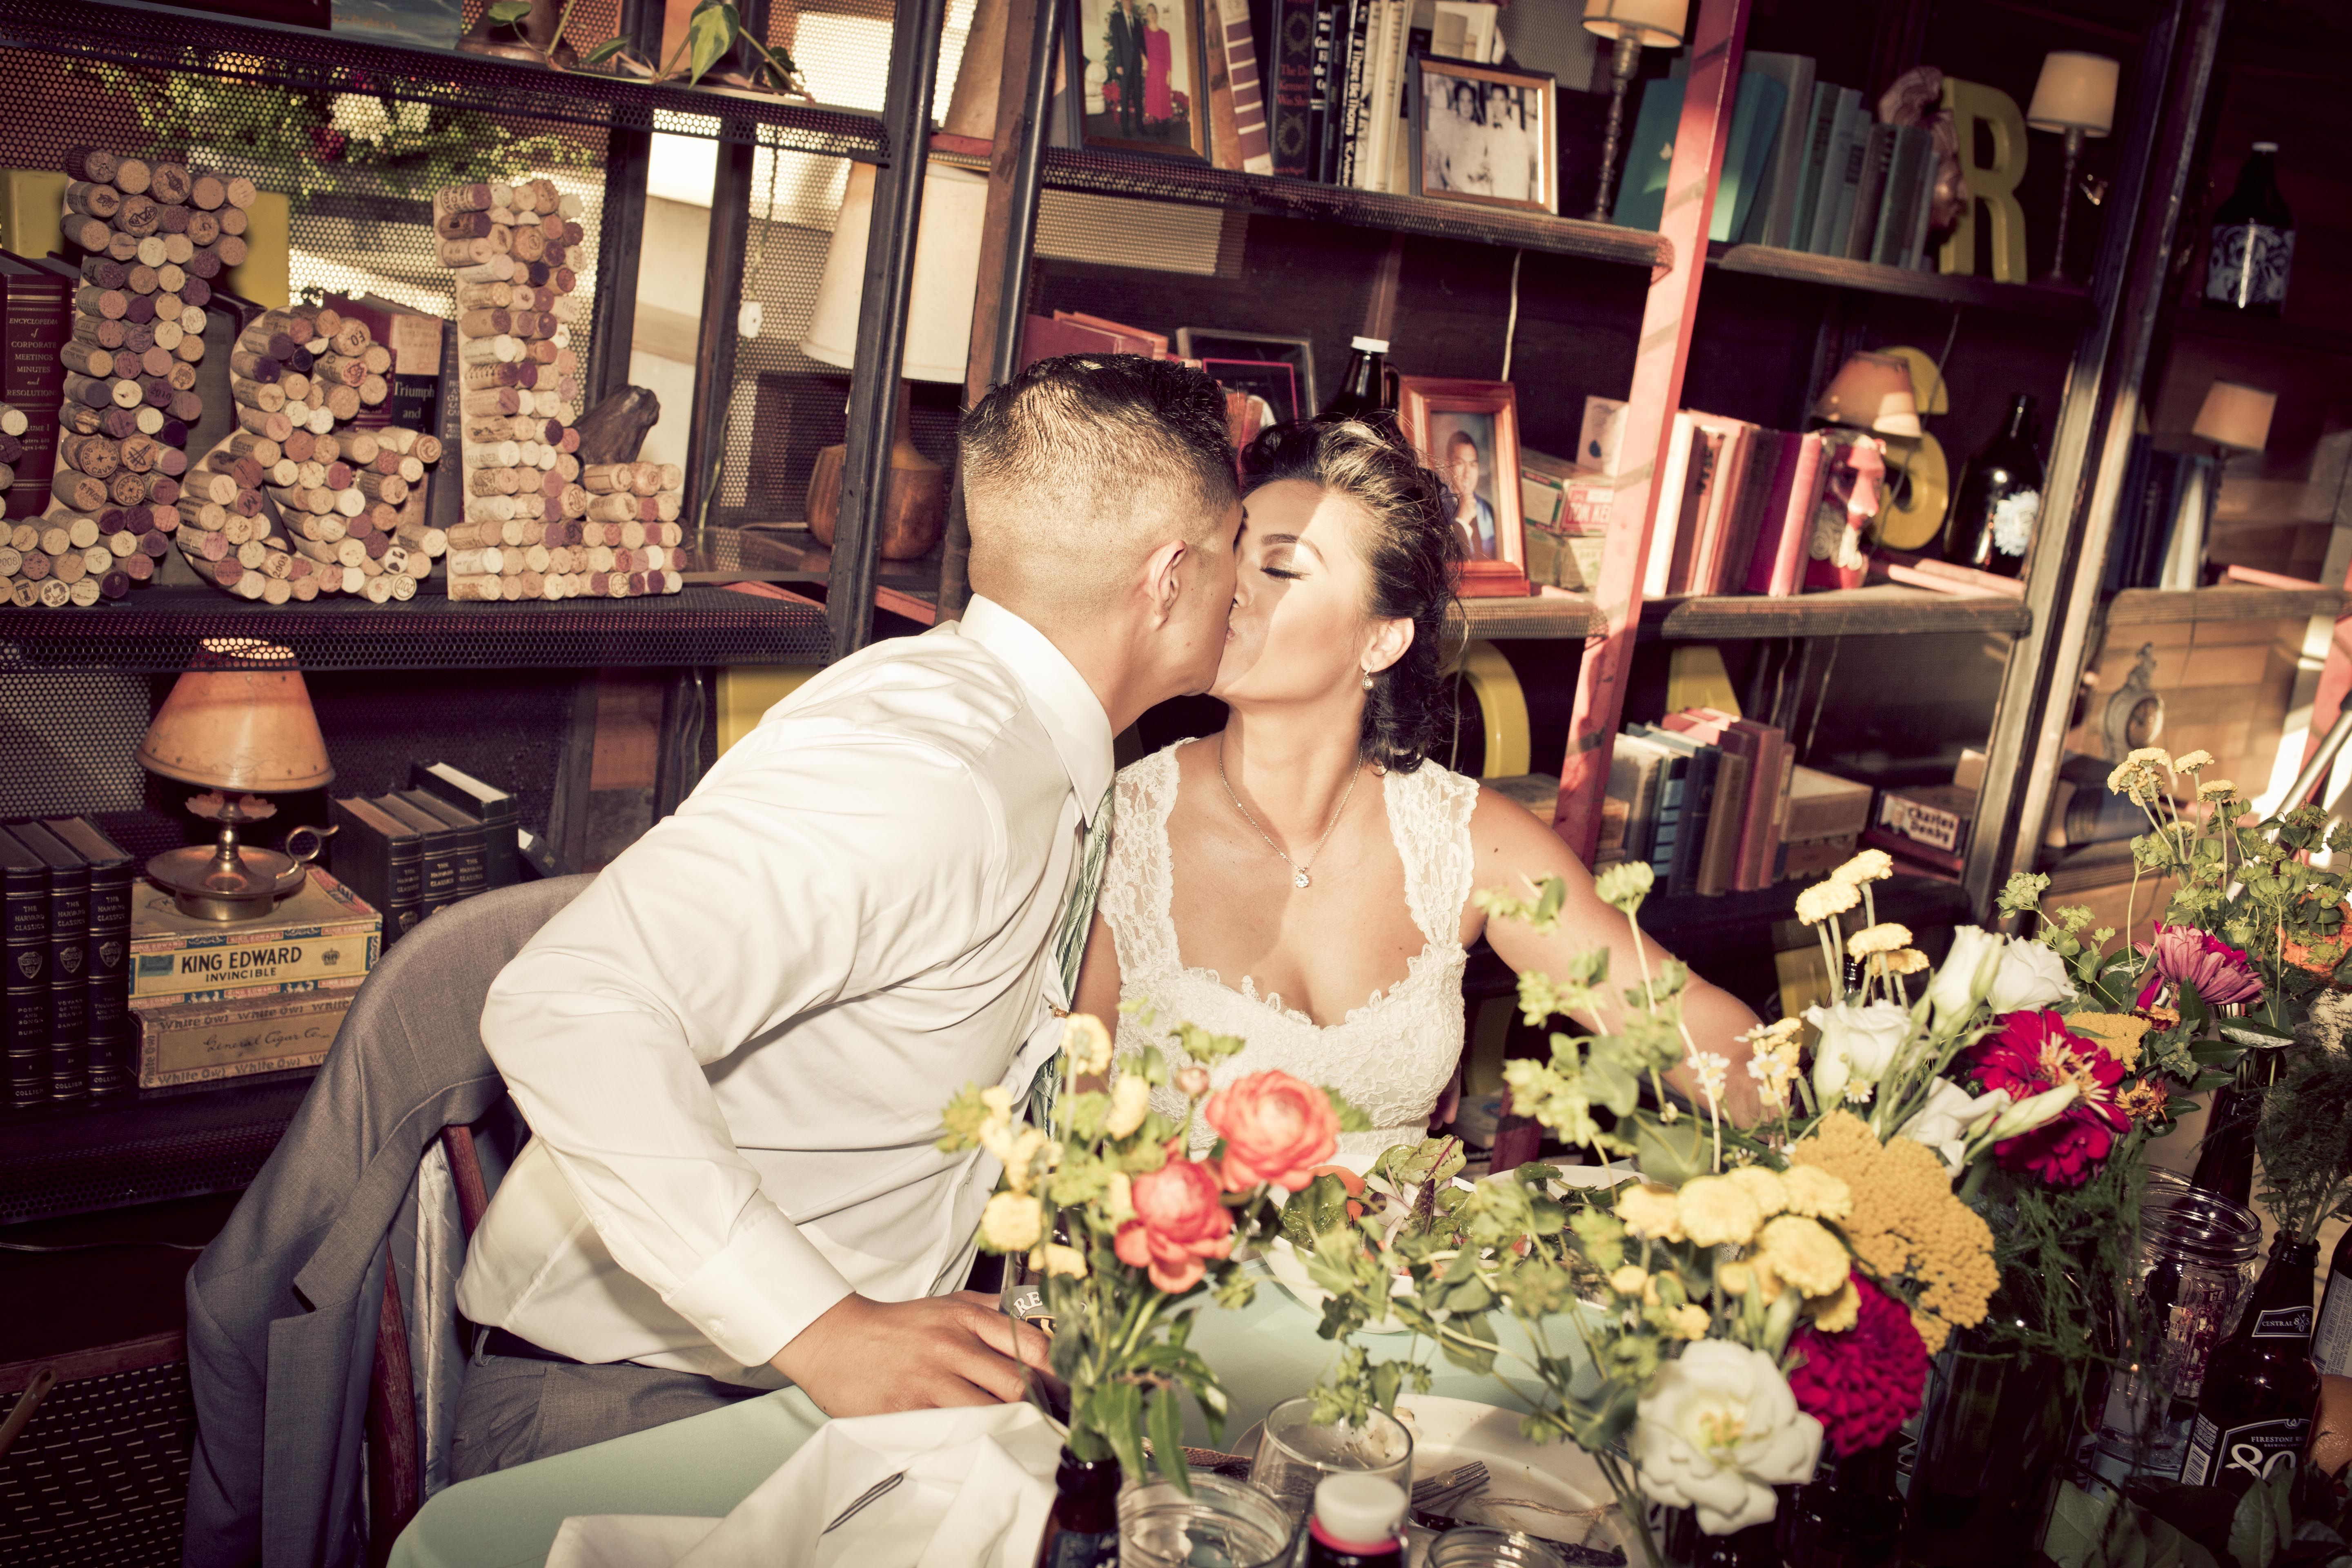 An Eclectic Vintage Americano Themed Wedding At The Smog Shoppe In